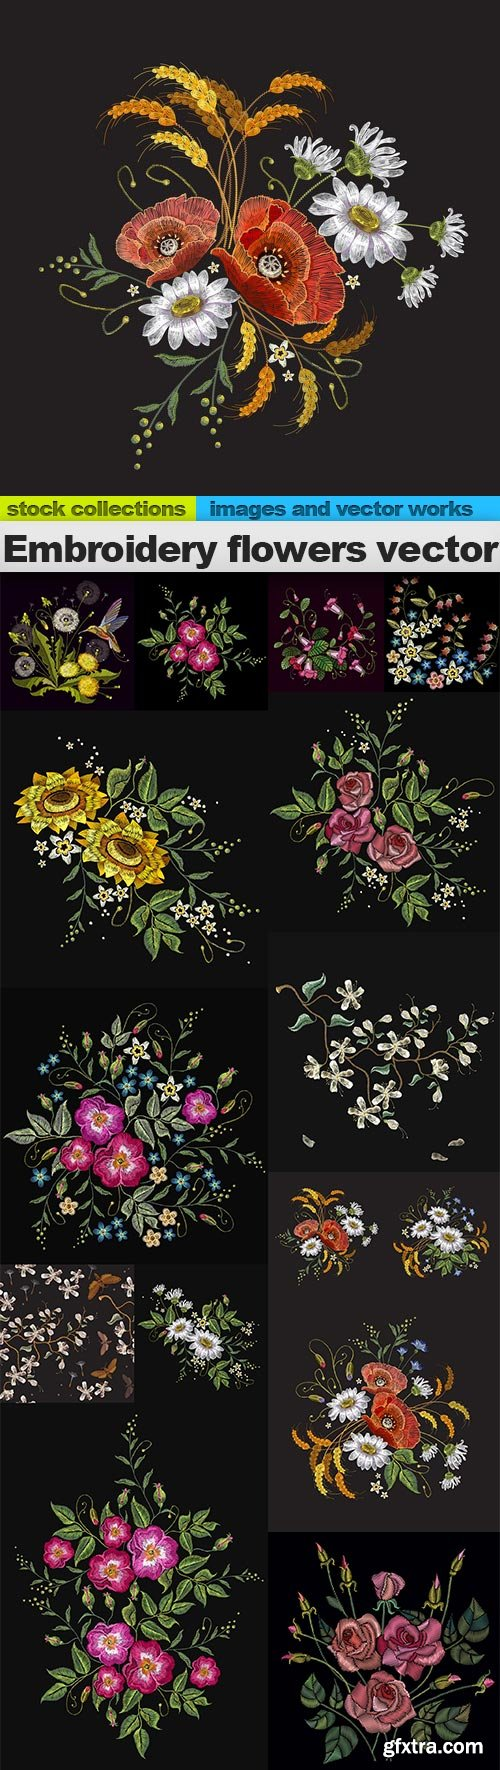 Embroidery flowers vector, 15 x EPS